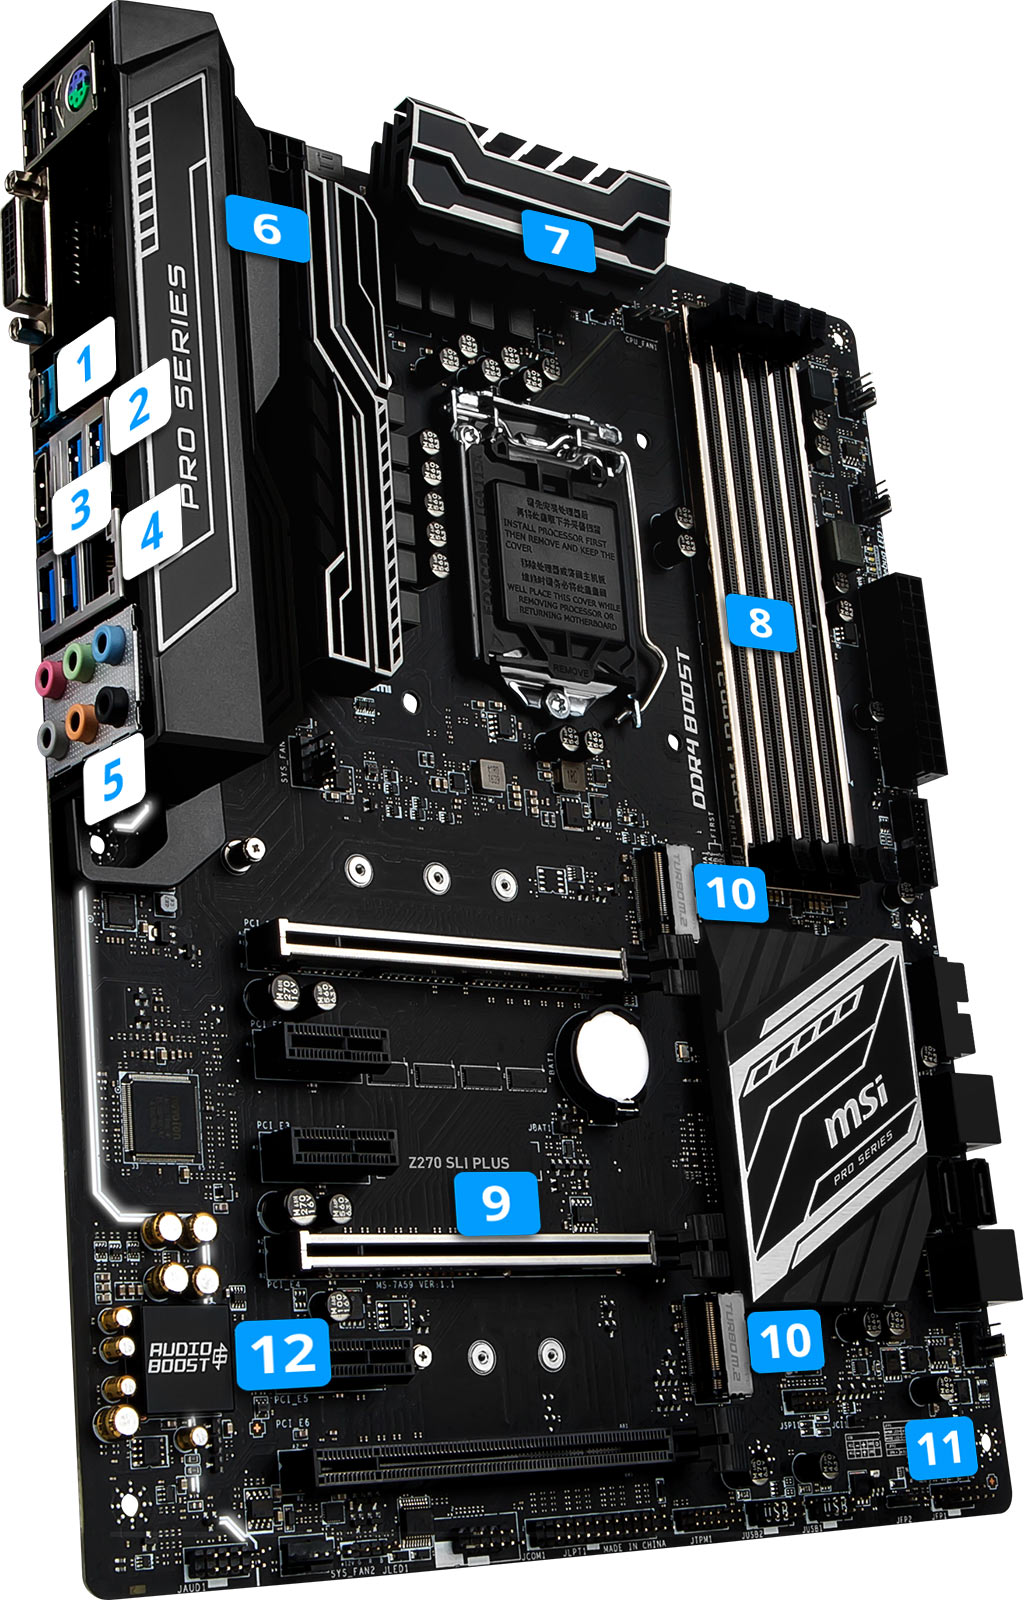 MSI Z270 SLI Plus overview